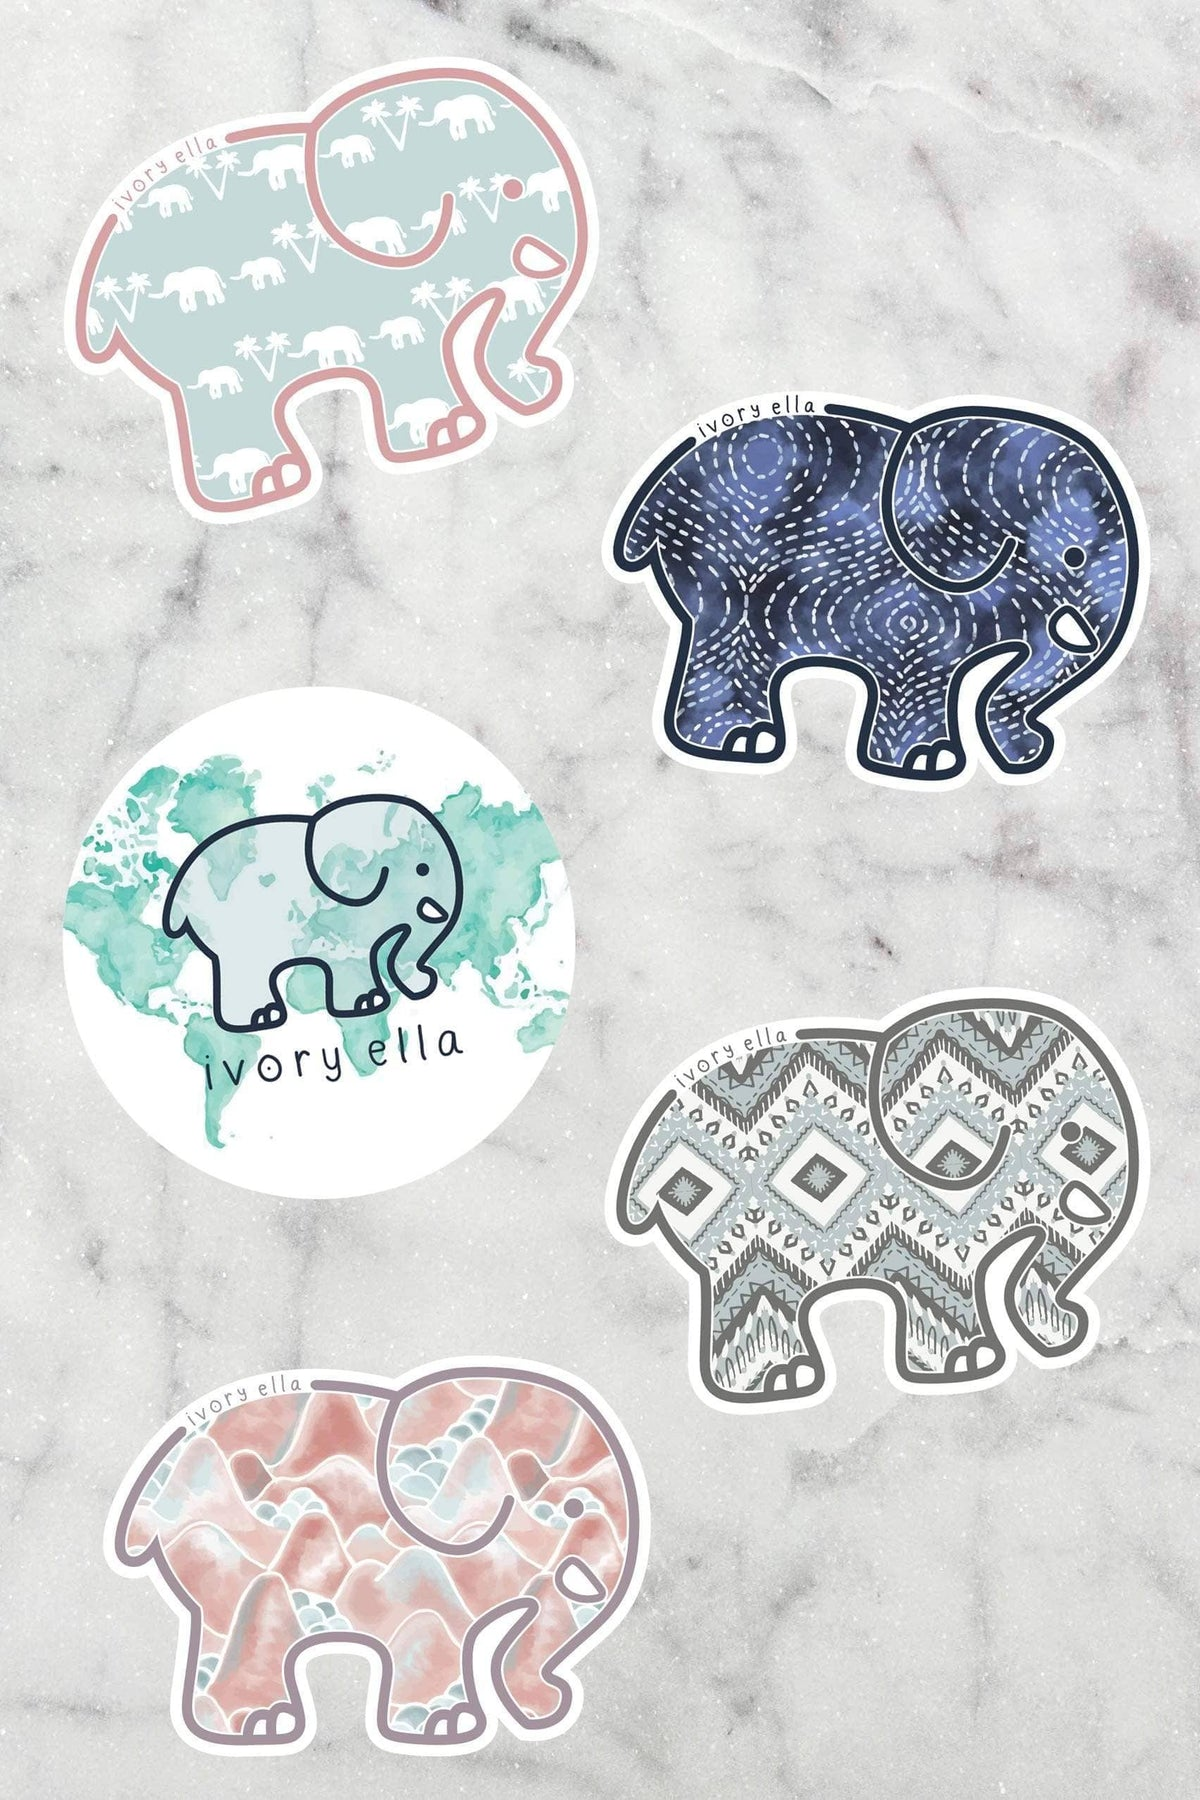 Ivory Ella Accessories June Sticker Pack